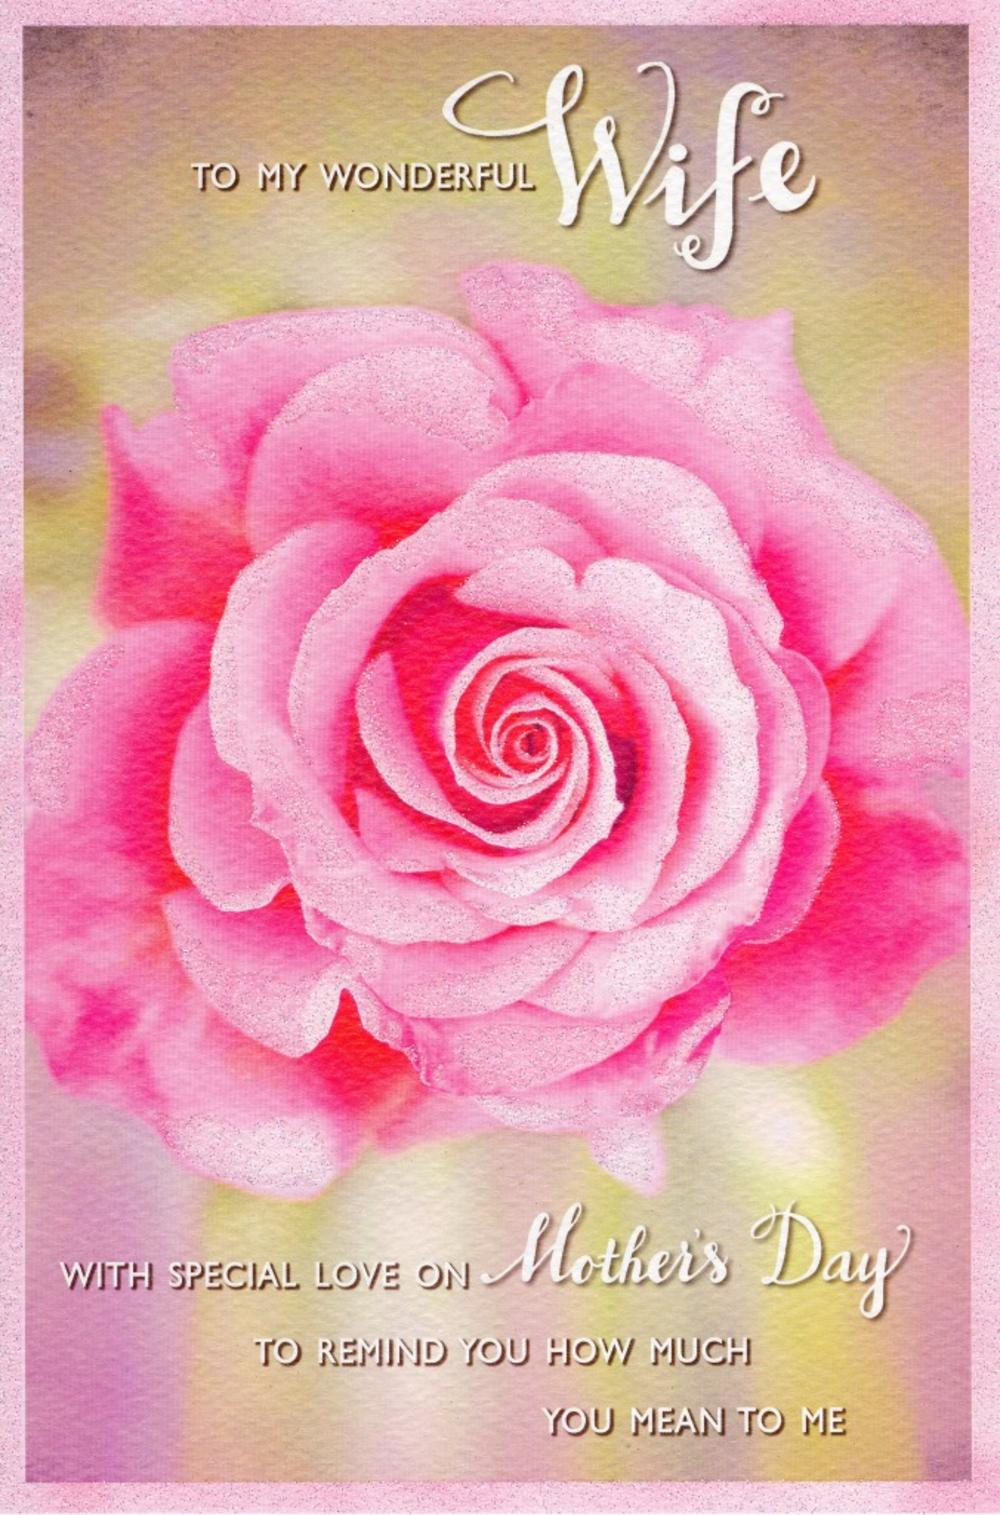 Wonderful wife happy mothers day card cards love kates wonderful wife happy mothers day card kristyandbryce Image collections